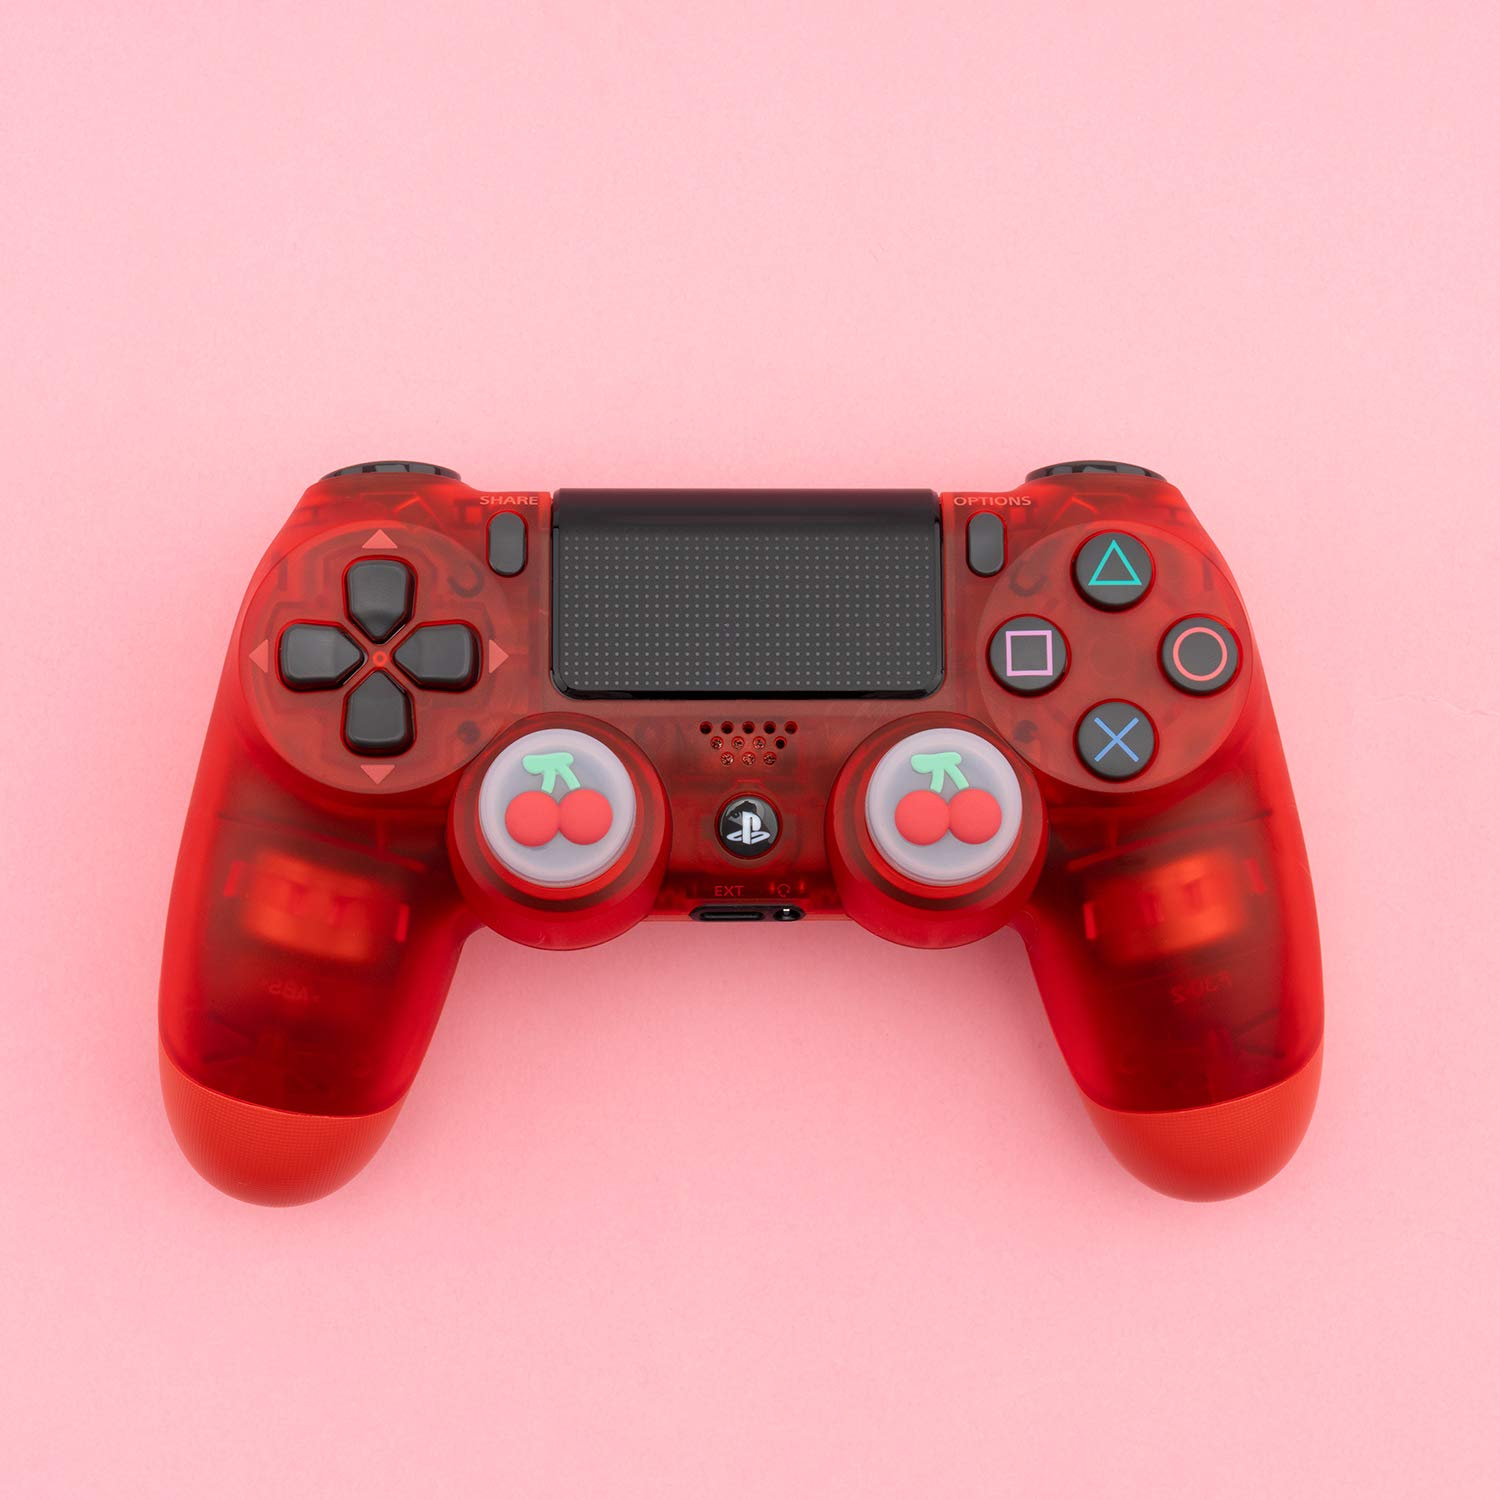 Thumbsticks Cover Set Compatible with Switch Pro Controller and PS4 Controller Cherry and Turnip GeekShare Fruits Theme Playstation 4 Controller Thumb Grips 2 Pair // 4 Pcs